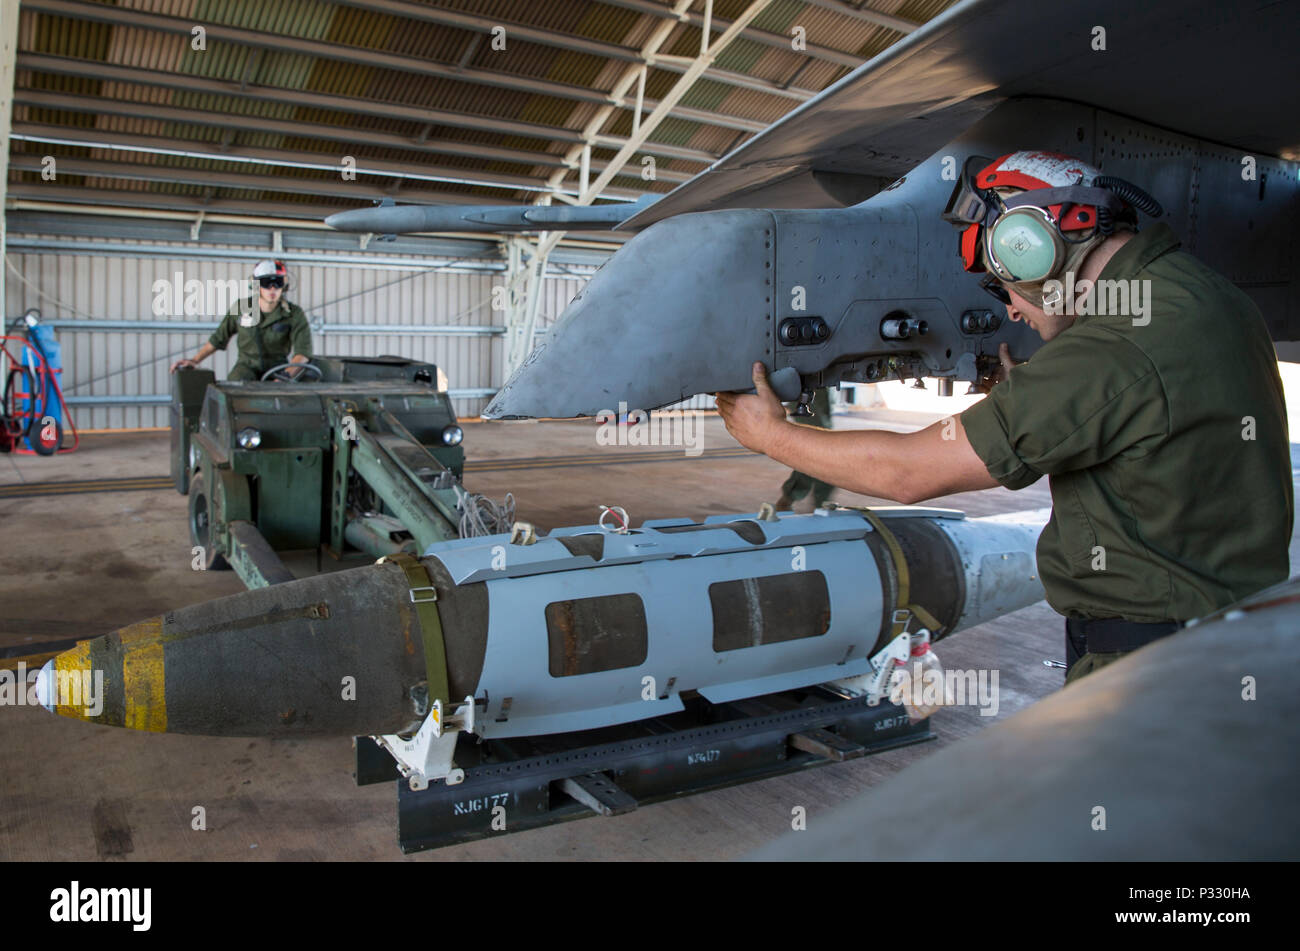 U.S. Marine Corps Lance Cpl. Trevor Serenelli, ordnance Marine assigned to Marine Fighter Attack Squadron (VMFA) 122, helps U.S. Marine Corps Cpl. Blake Uhden, ordnance Marine assigned to VMFA-122, guide a bomb onto an aircraft during Southern Frontier at Royal Australian Air Force Base Tindal, Australia, Aug. 26, 2016. VMFA-122 dropped hundreds of thousands of pounds of ordnance while conducting close air support missions for ground combat units at the Bradshaw Range Complex. Southern Frontier is a three week unit level training evolution helping the flying squadron gain qualifications and ex - Stock Image